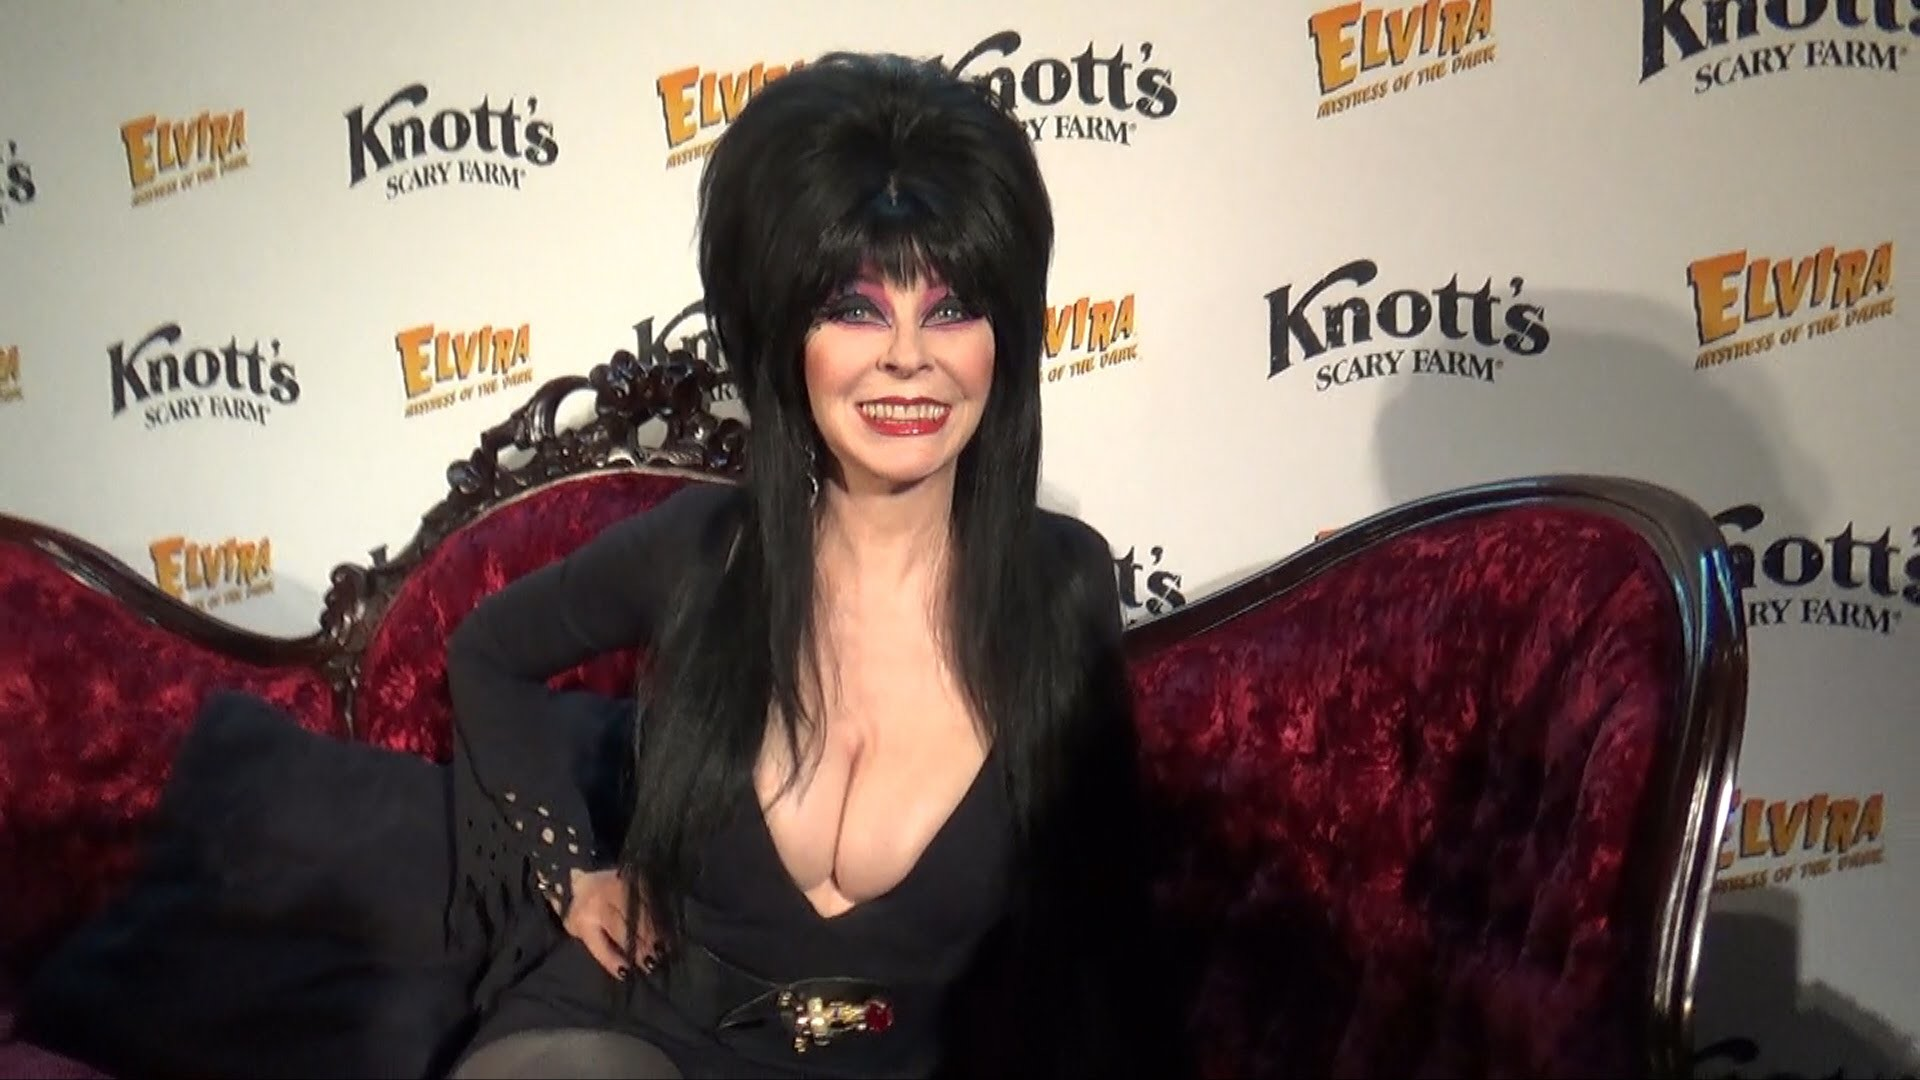 1920x1080 Elvira: Mistress of the Dark (Cassandra Peterson) Interview at Knott's  Scary Farm Halloween Preview - YouTube